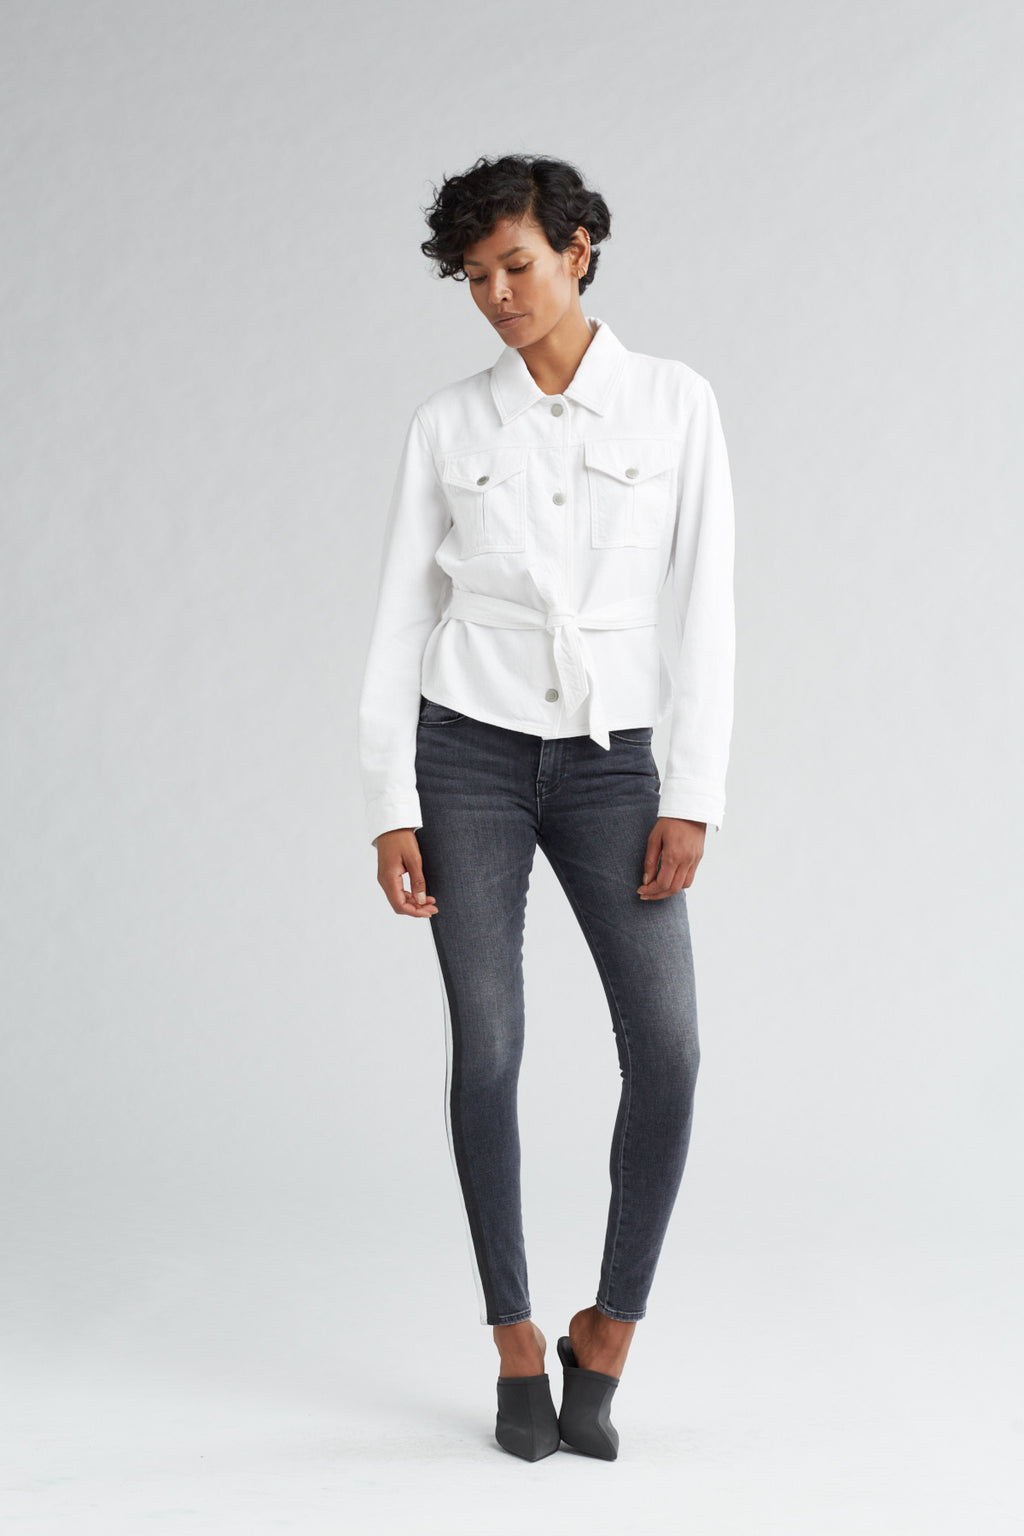 MILITARY TIE TOP - OFF WHITE - Image 1